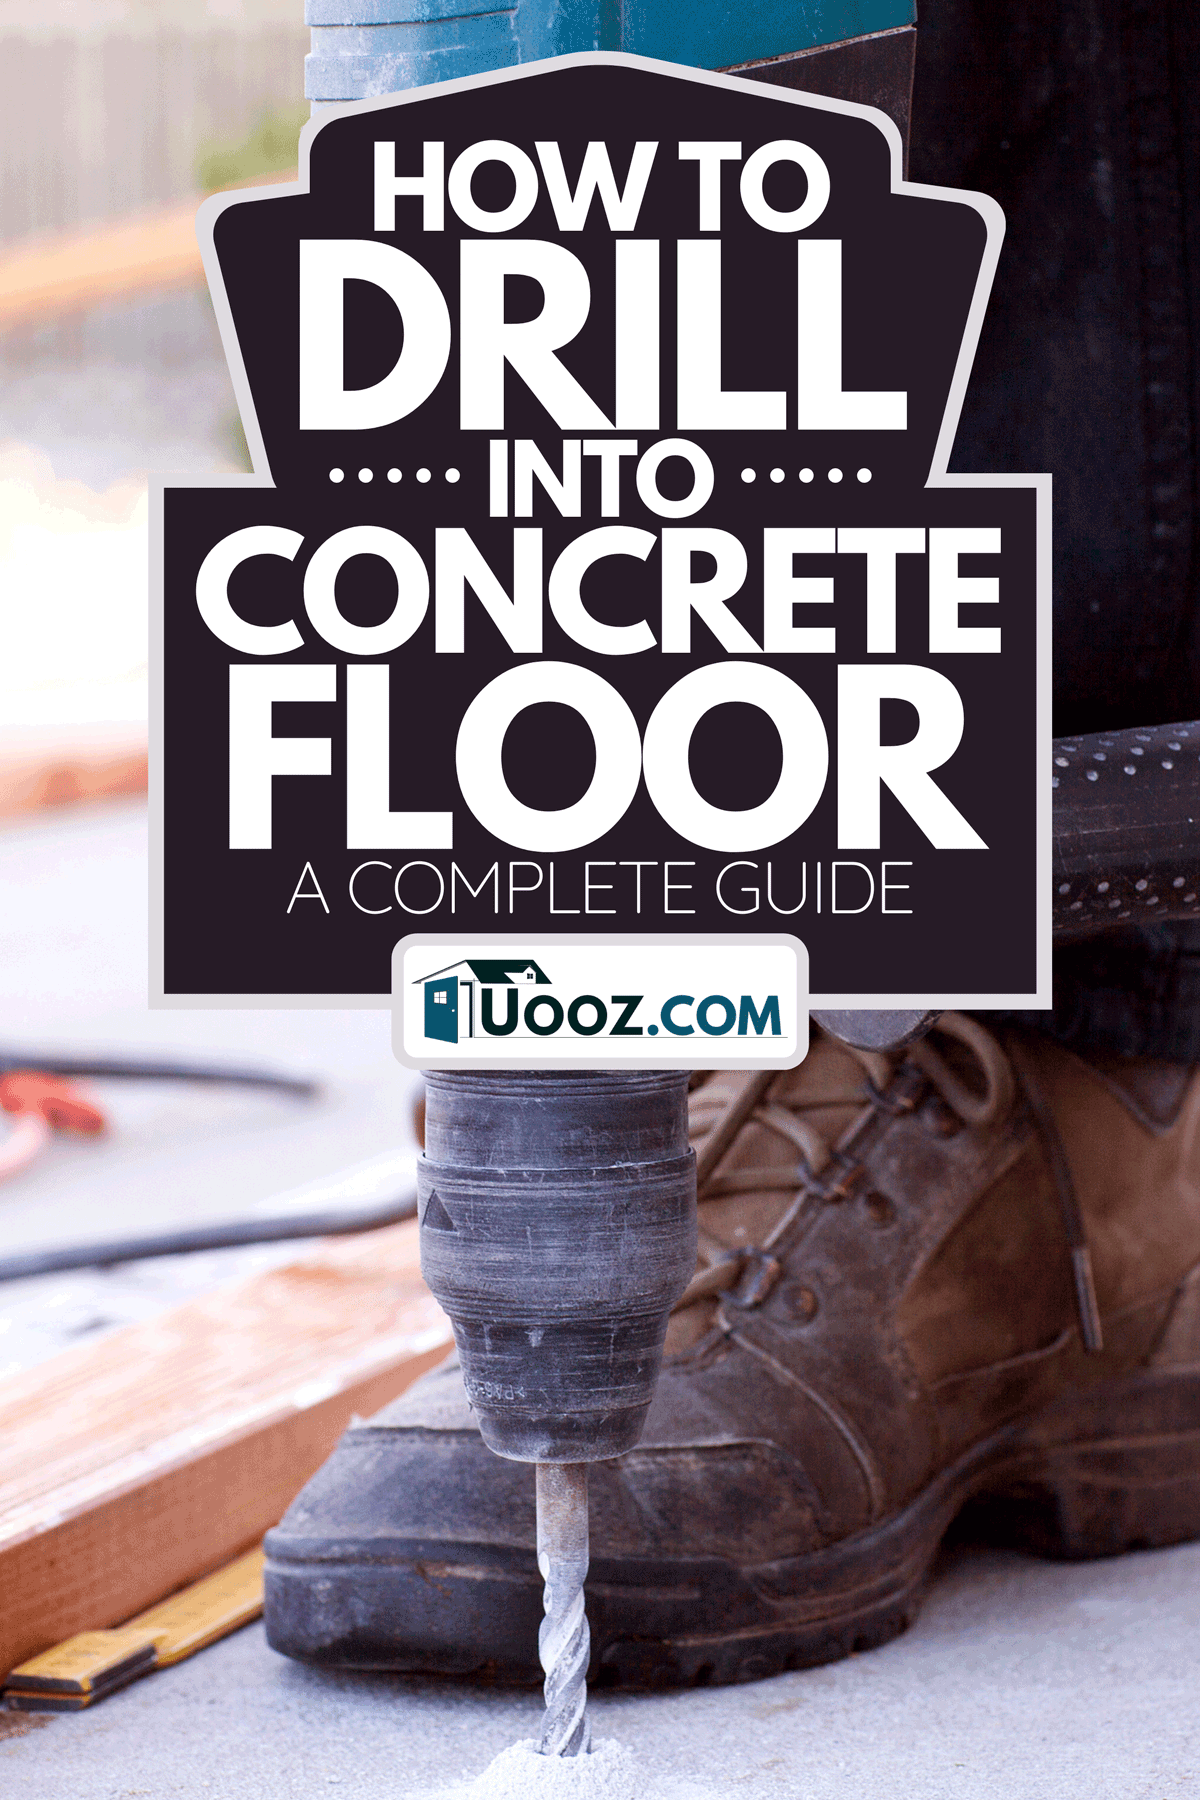 A man drilling into concrete floor, How To Drill Into Concrete Floor